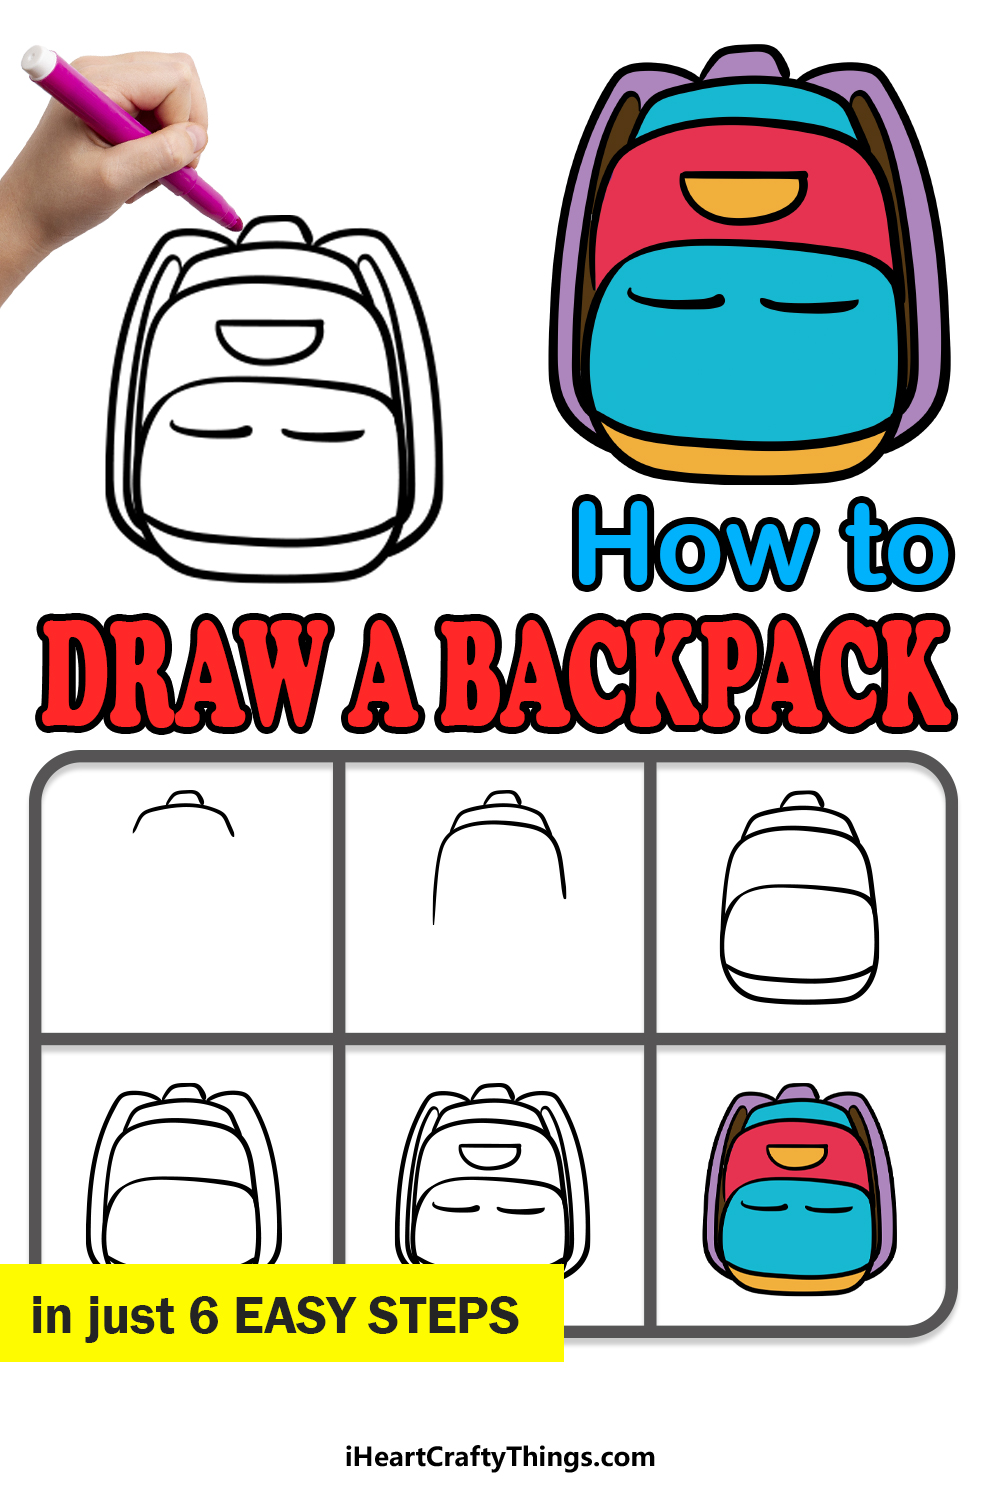 how to draw a backpack in 6 easy steps